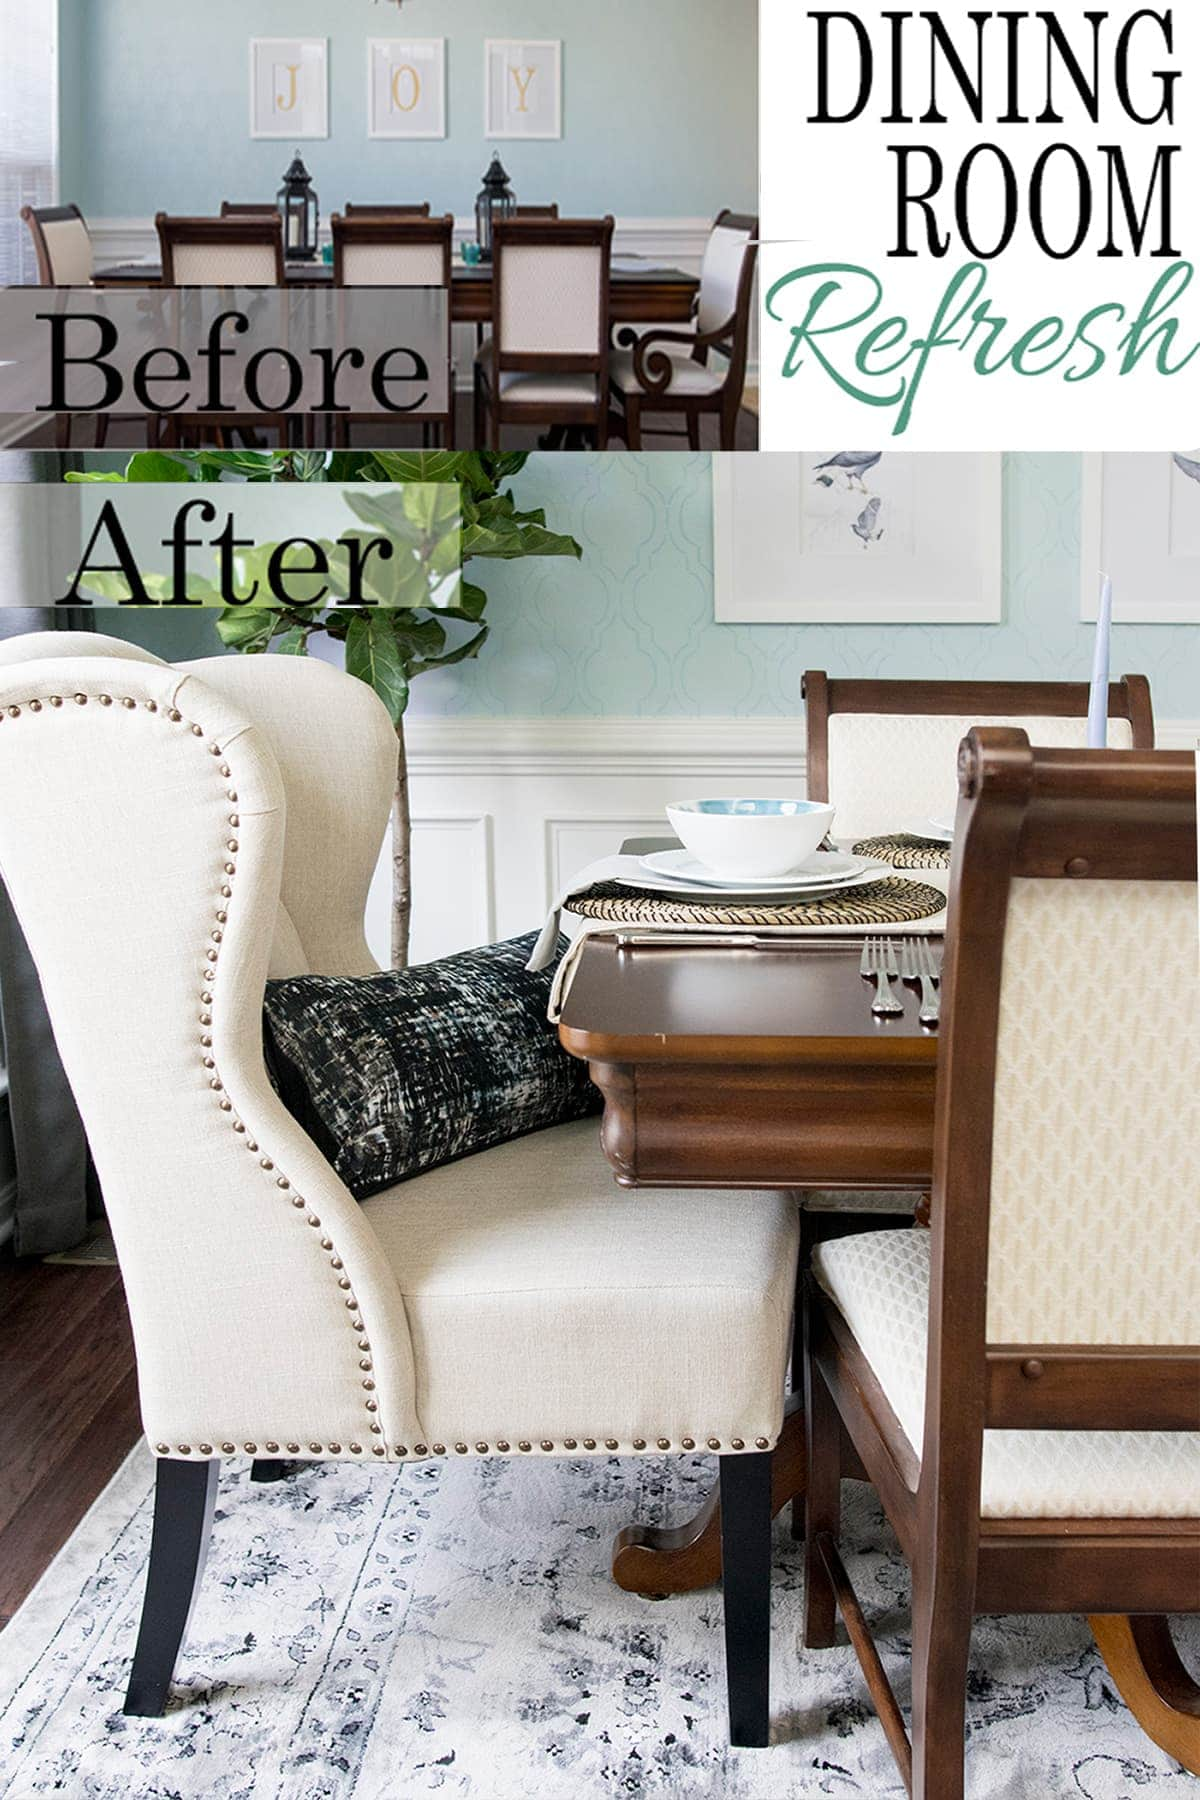 We did a complete dining room makeover in less than 6 weeks! The makeover budget was tiny. The dining room now has stenciled walls and a traditional style. Check out all the before and after photos!